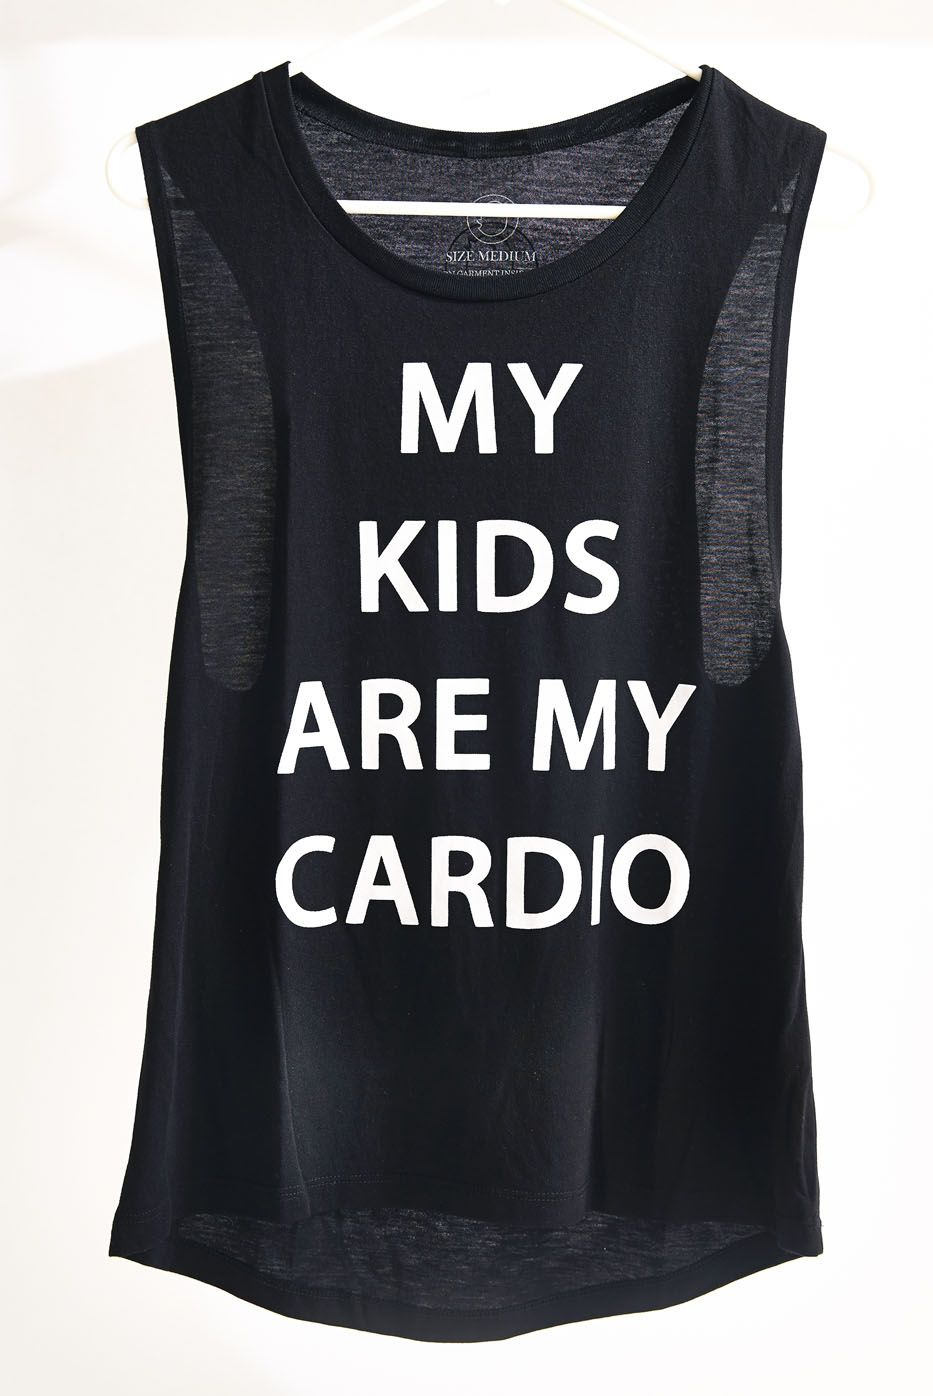 While chasing the kids and getting your workout in, look stylish in this super soft tank! Available at www.baby-chick.com.